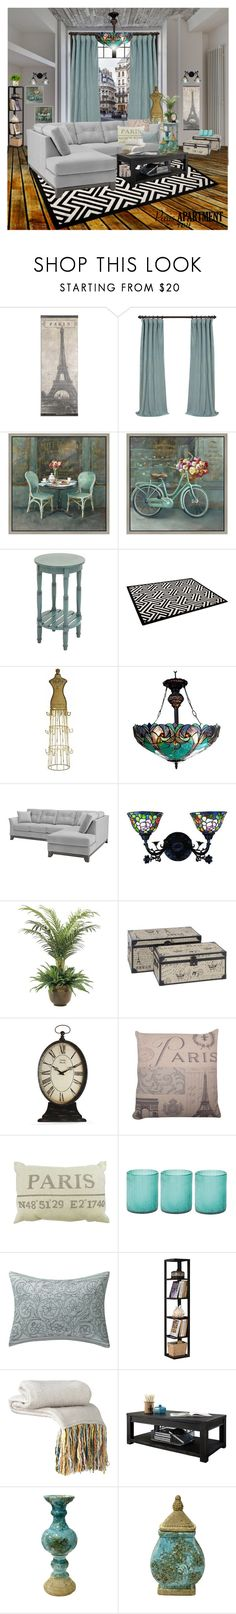 """""""The Perfect Paris Apartment"""" by talvadh ❤ liked on Polyvore featuring interior, interiors, interior design, home, home decor, interior decorating, Marc, Green Leaf Art, Benzara and Chloé"""